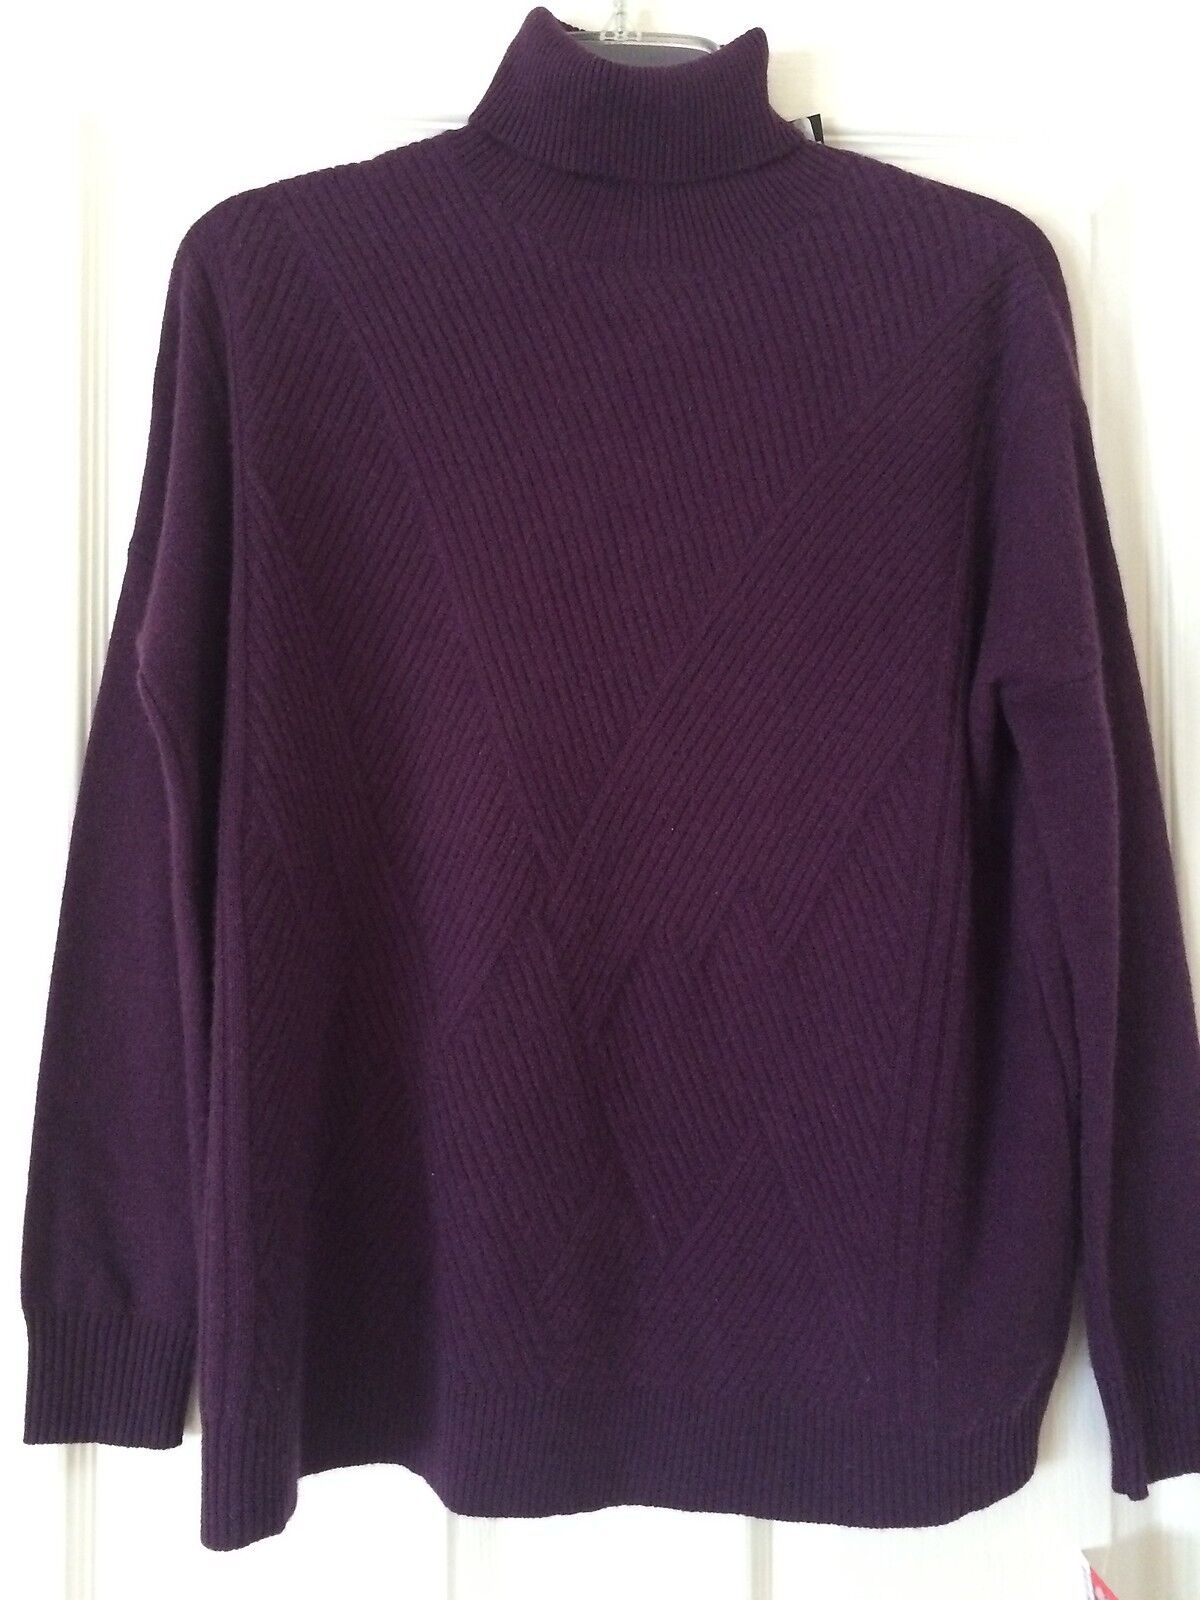 NWT C by BLOOMINGDALES Cashmere Turtleneck Tunic  Sweater Plum XS  228